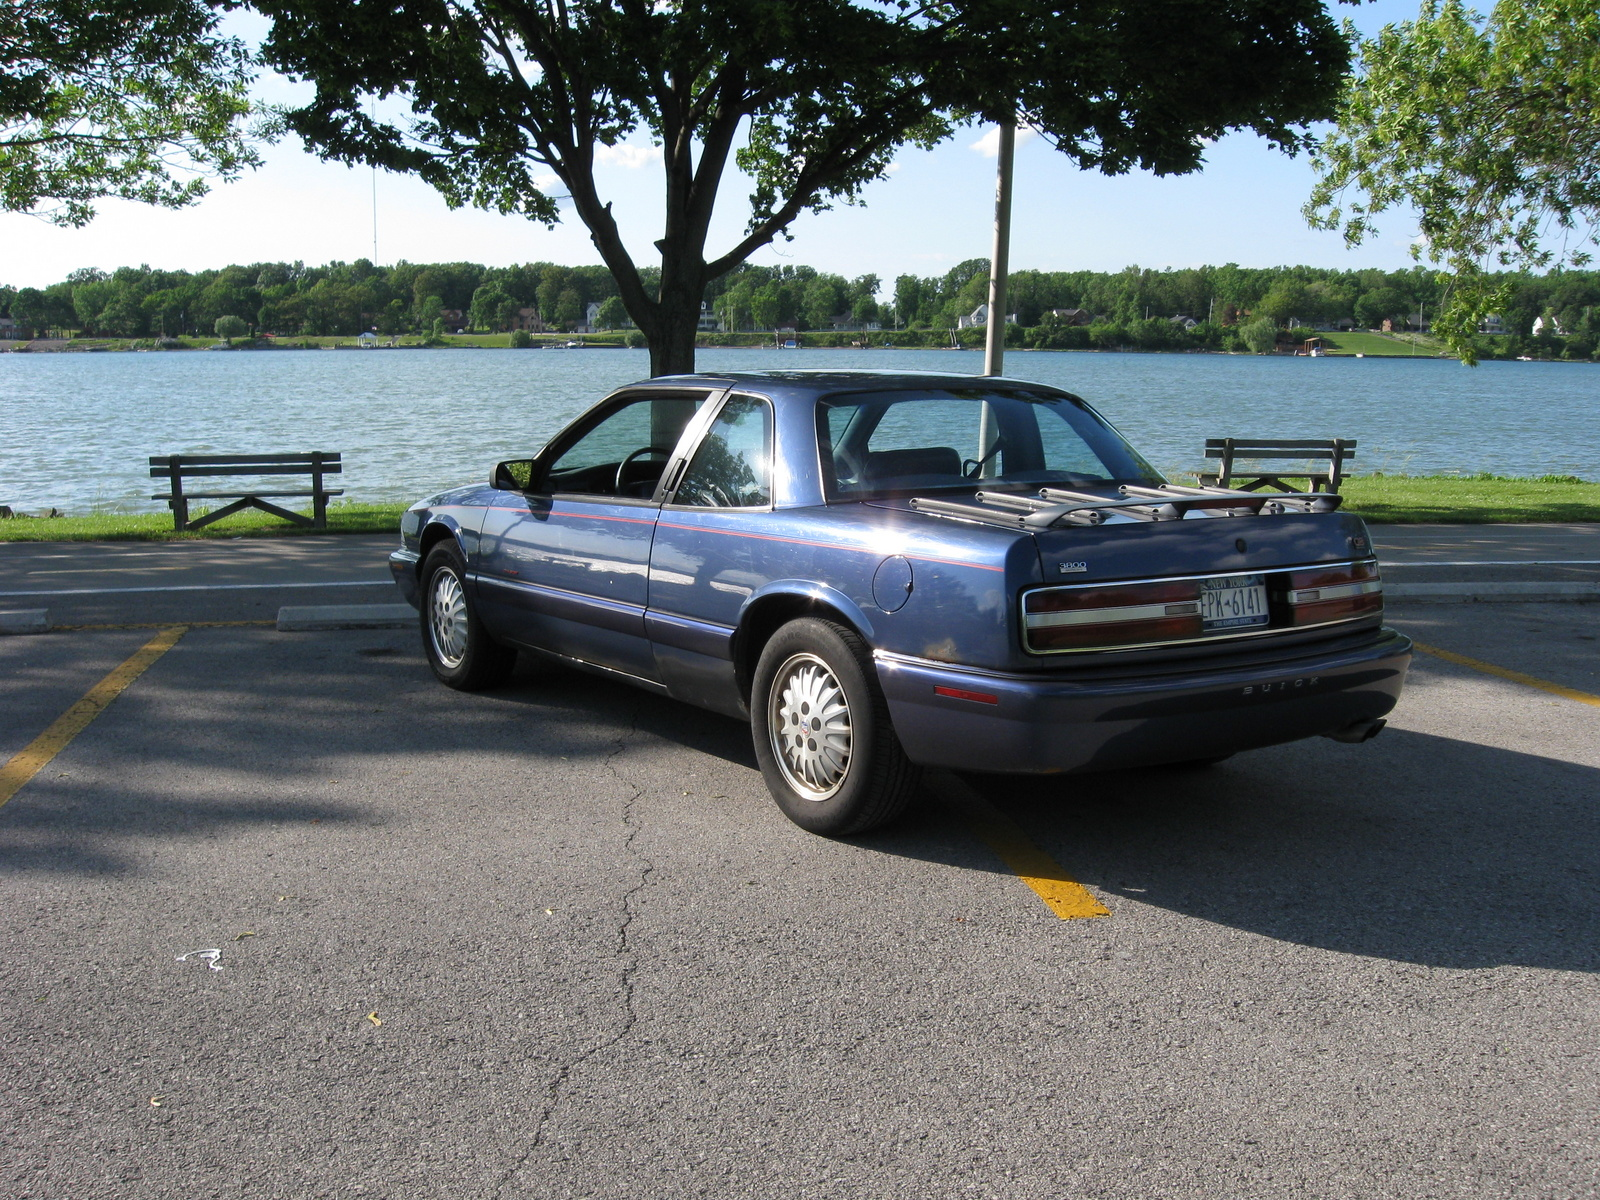 Picture of 1996 Buick Regal 2 Dr Gran Sport Coupe